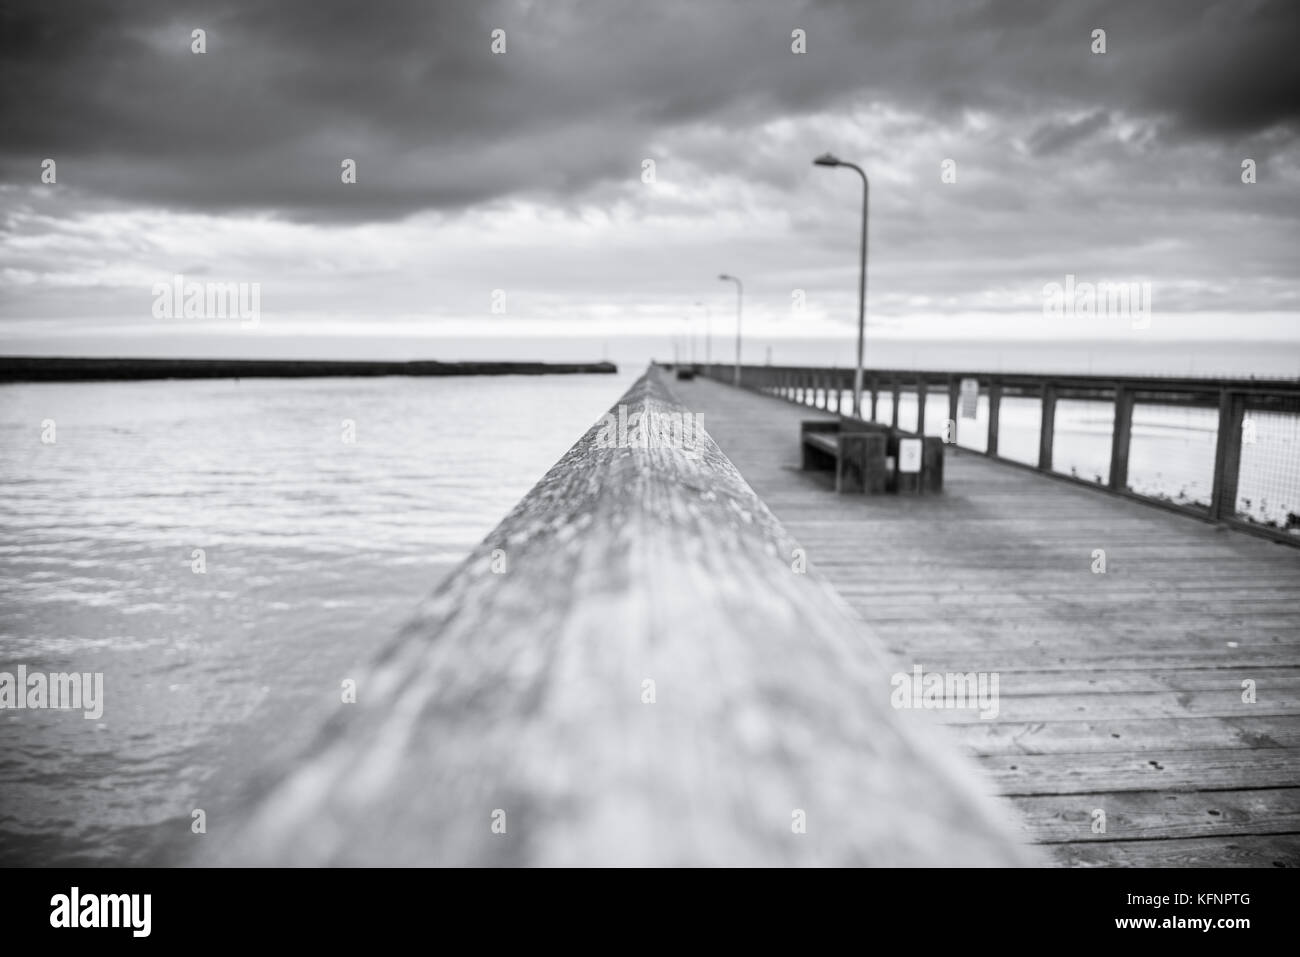 Black and white dramatic seascape - bridge, sea and clouds - Stock Image